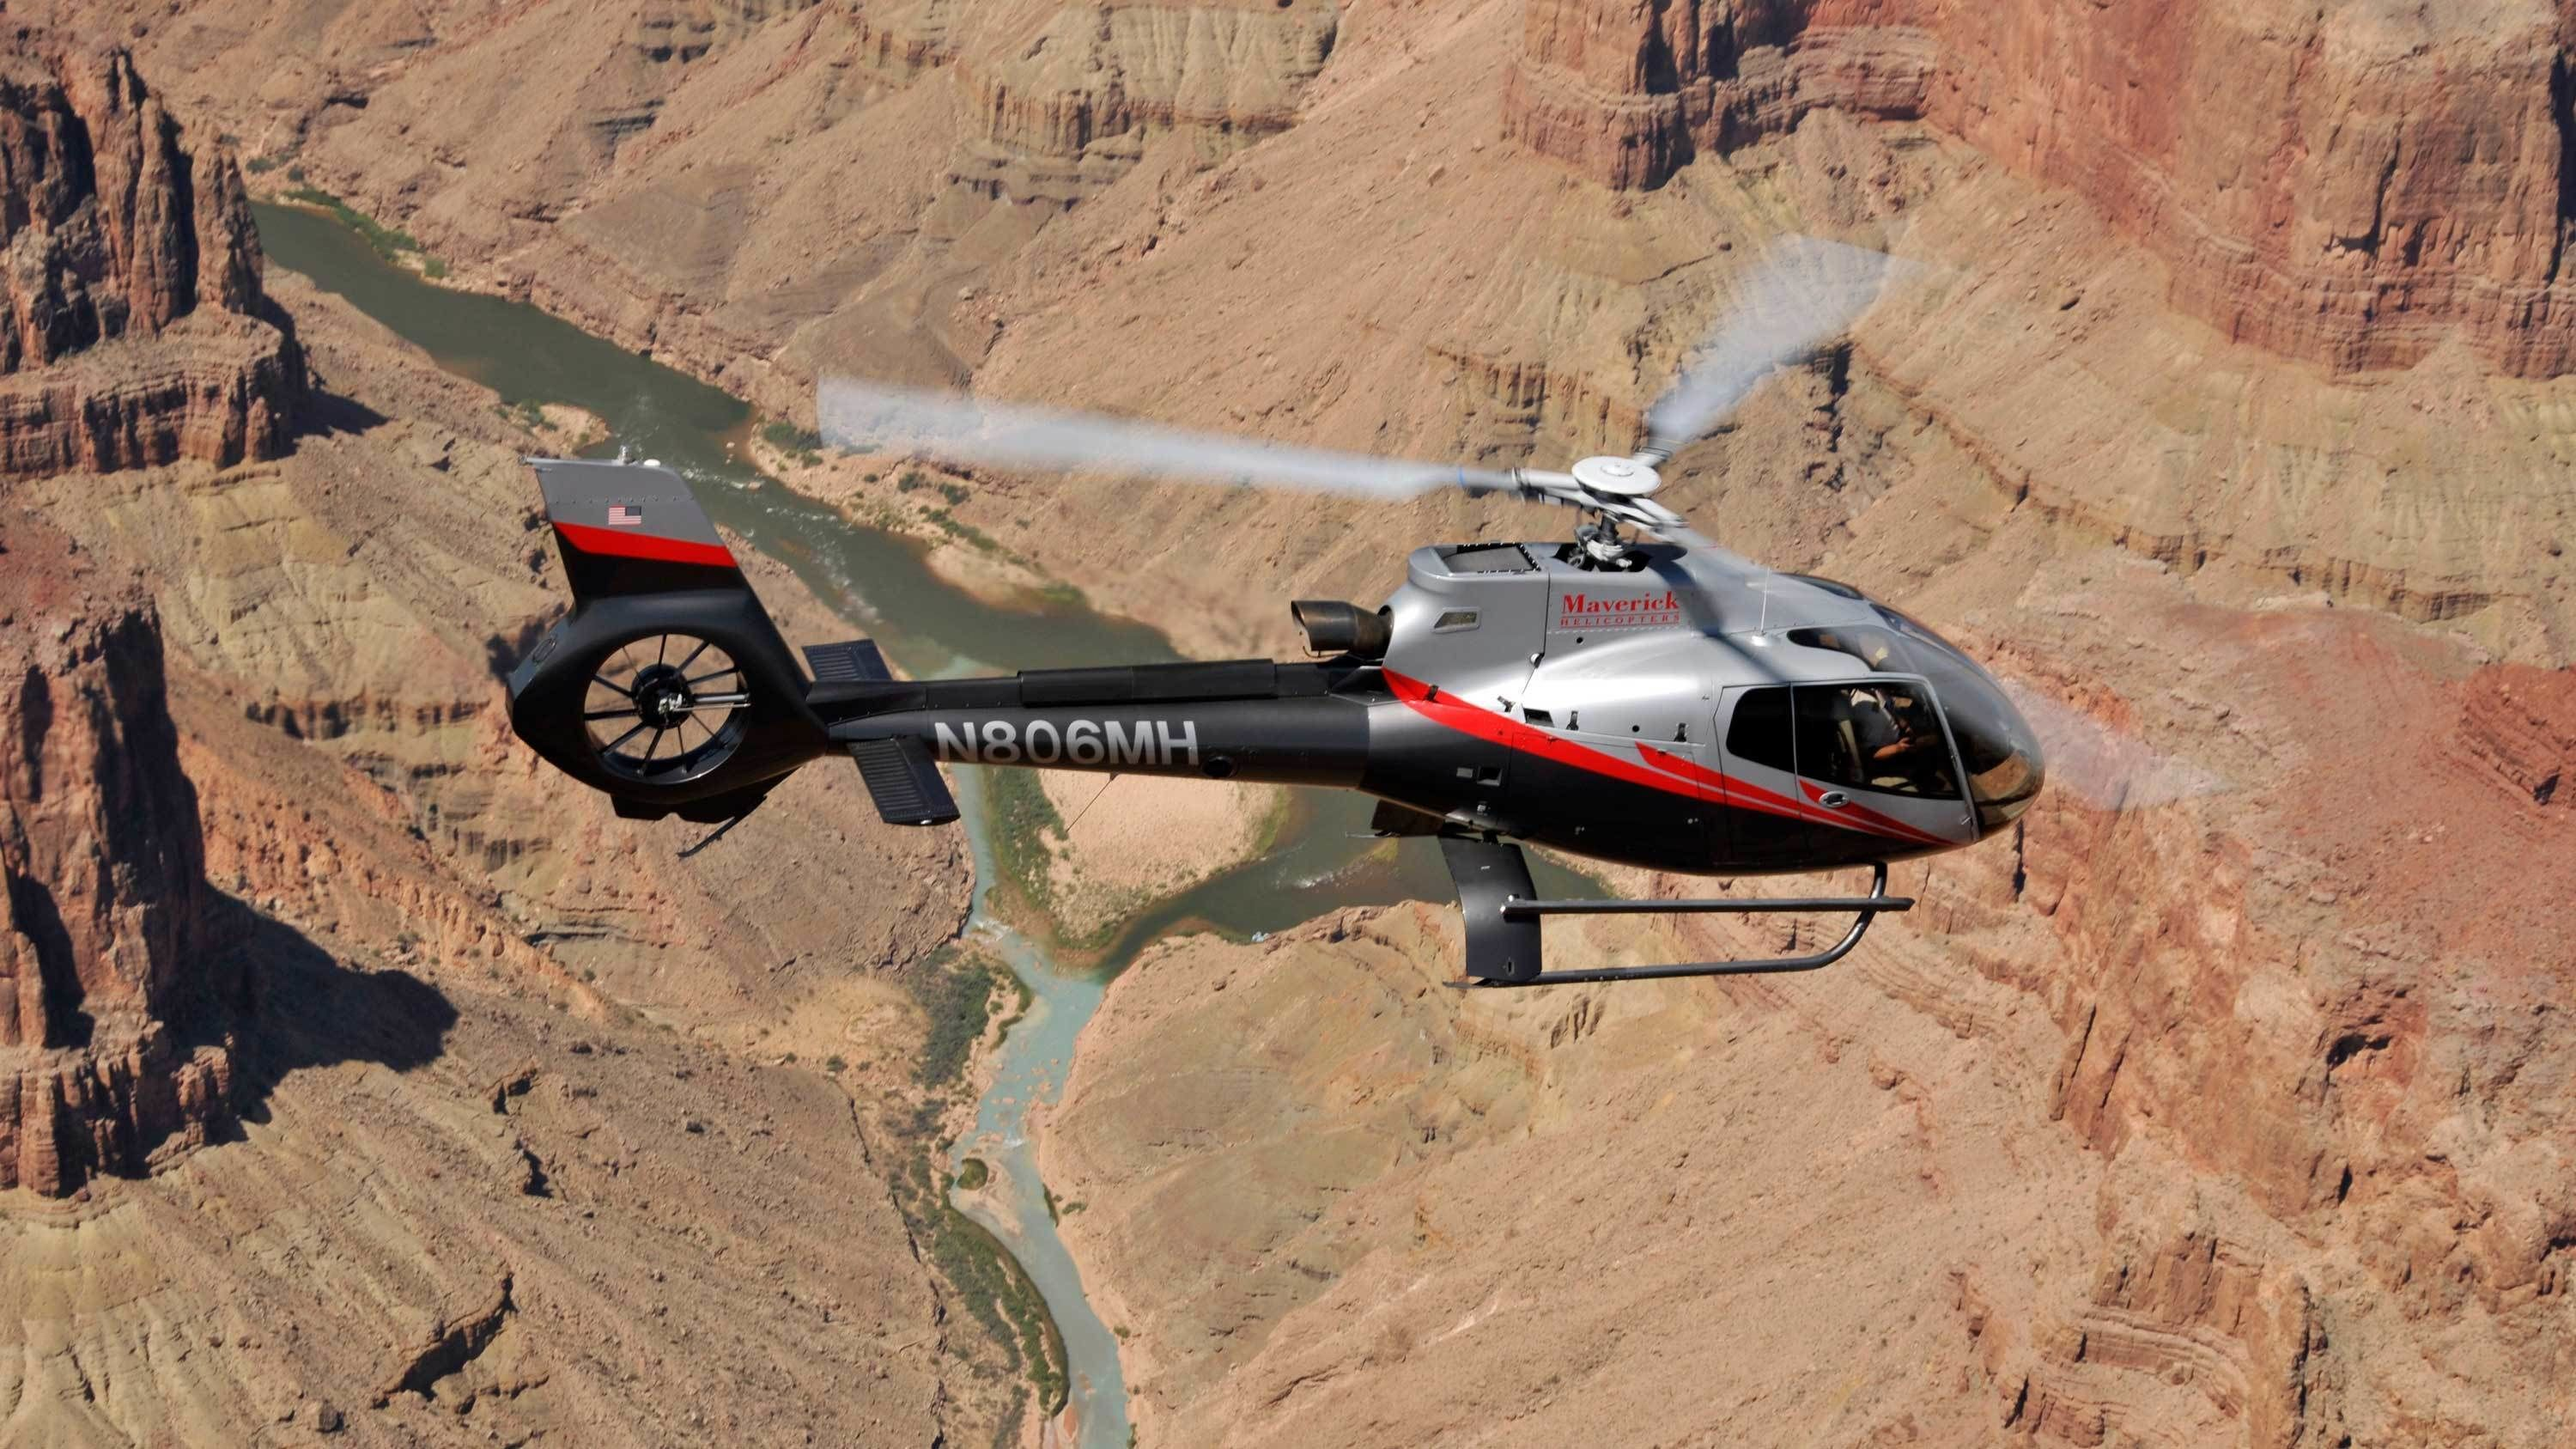 Close view of helicopter flying over the Grand Canyon